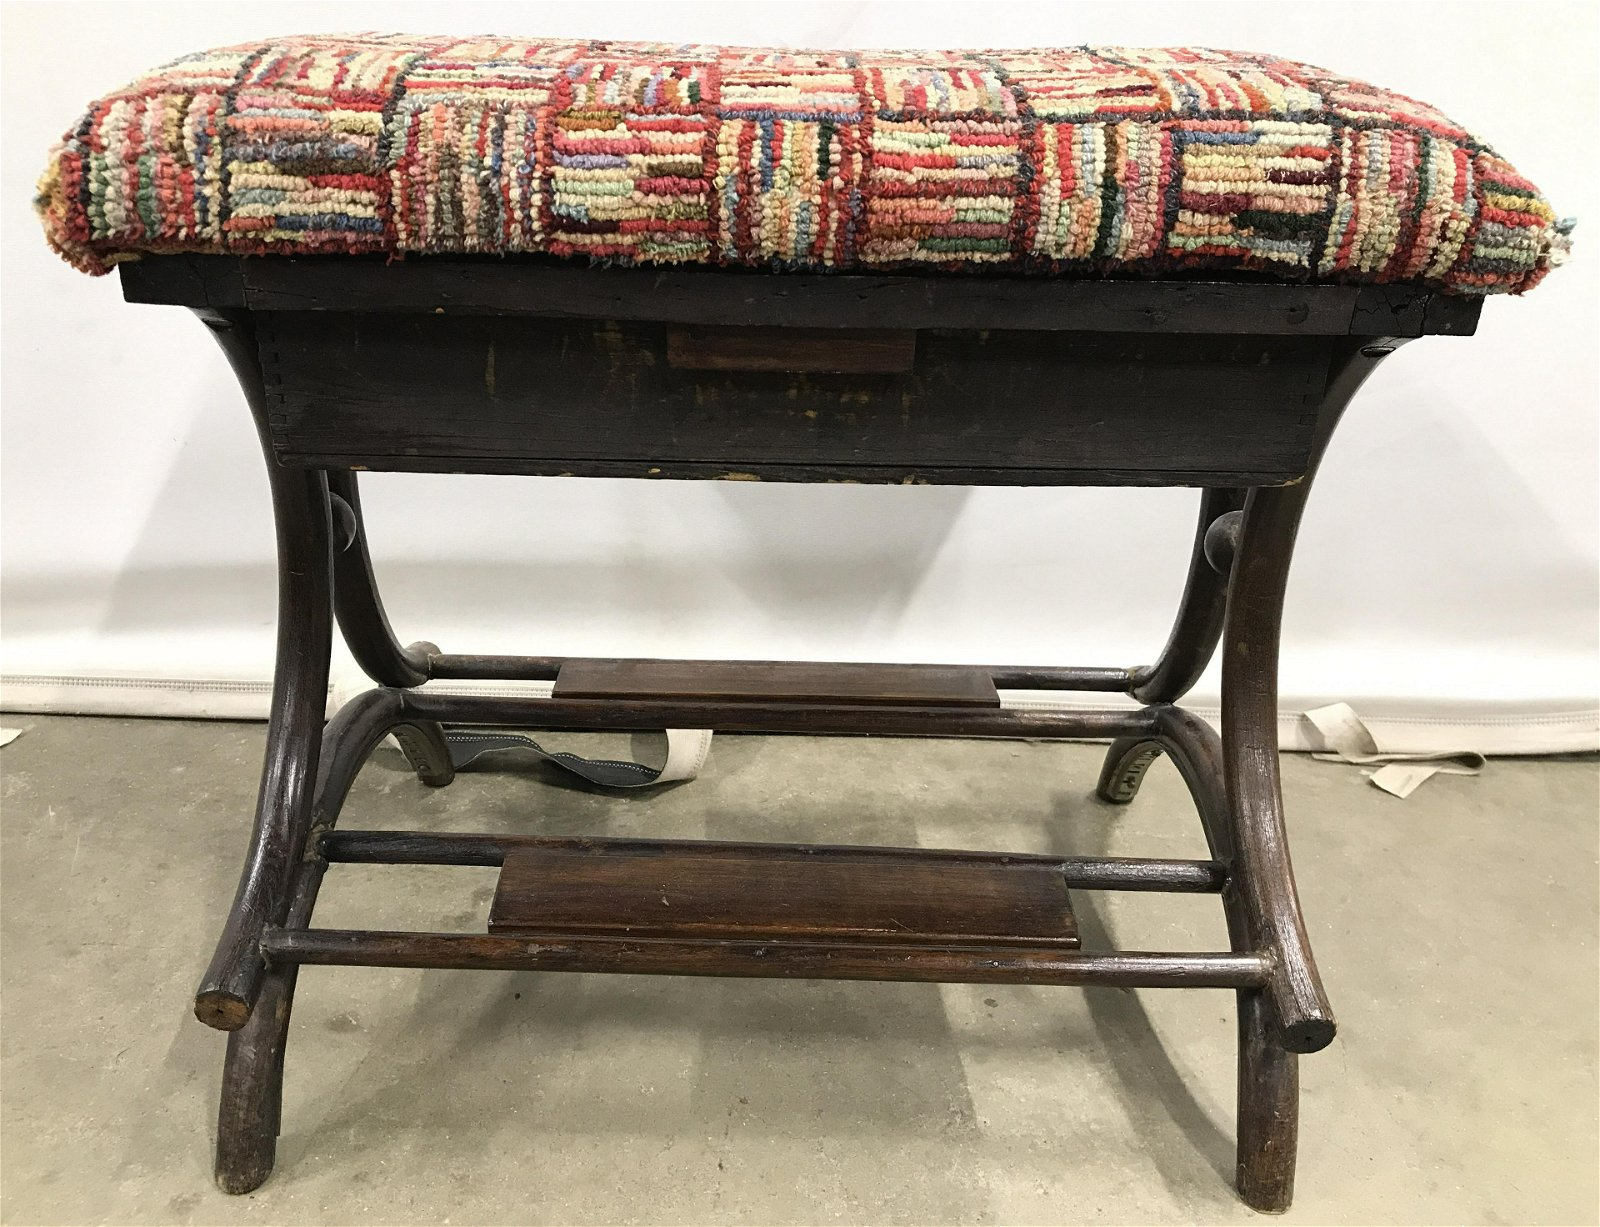 THE FAVORITE Antique Hand hooked yarn Sewing Bench